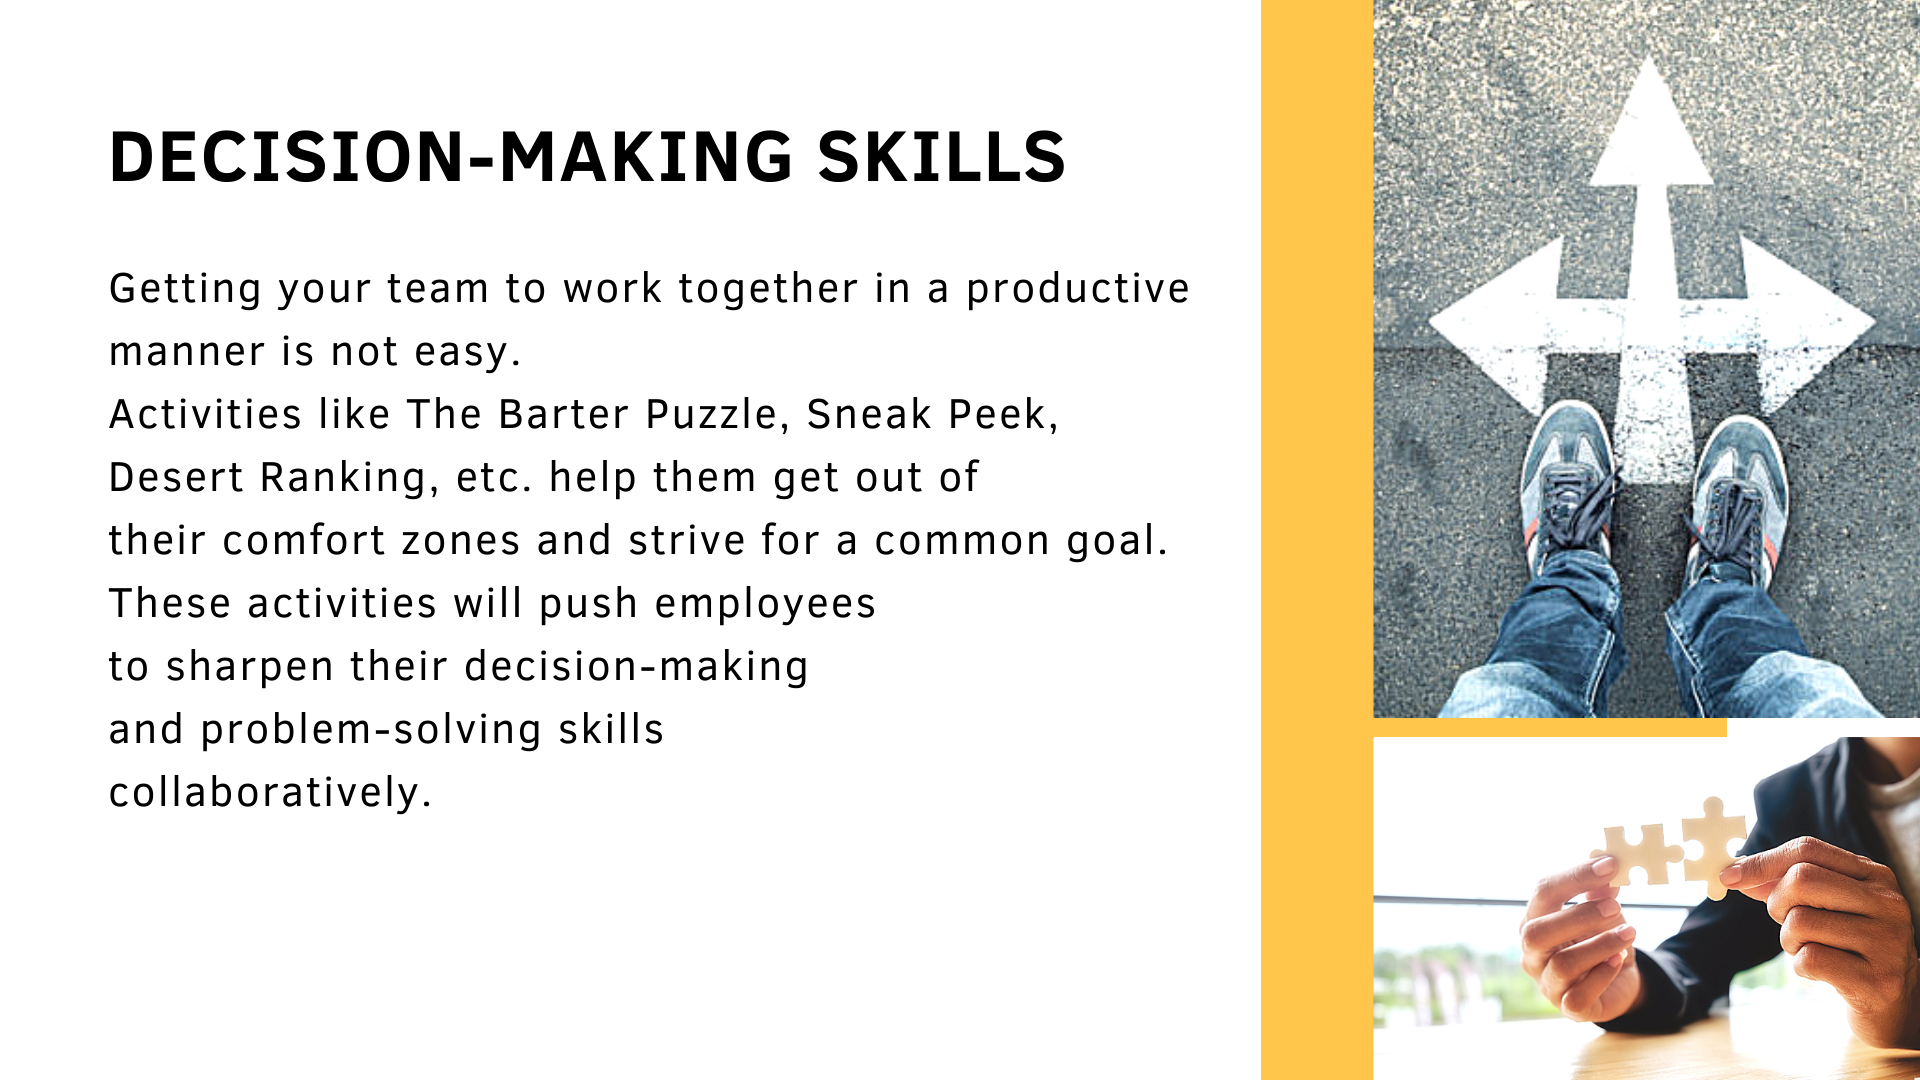 Decision-making skills. Getting your team to work together in a productive manner is not easy.  Activities like The Barter Puzzle, Sneak Peek, Desert Ranking, etc. help them get out of  their comfort zones and strive for a common goal.  These activities will push employees  to sharpen their decision-making  and problem-solving skills  collaboratively.